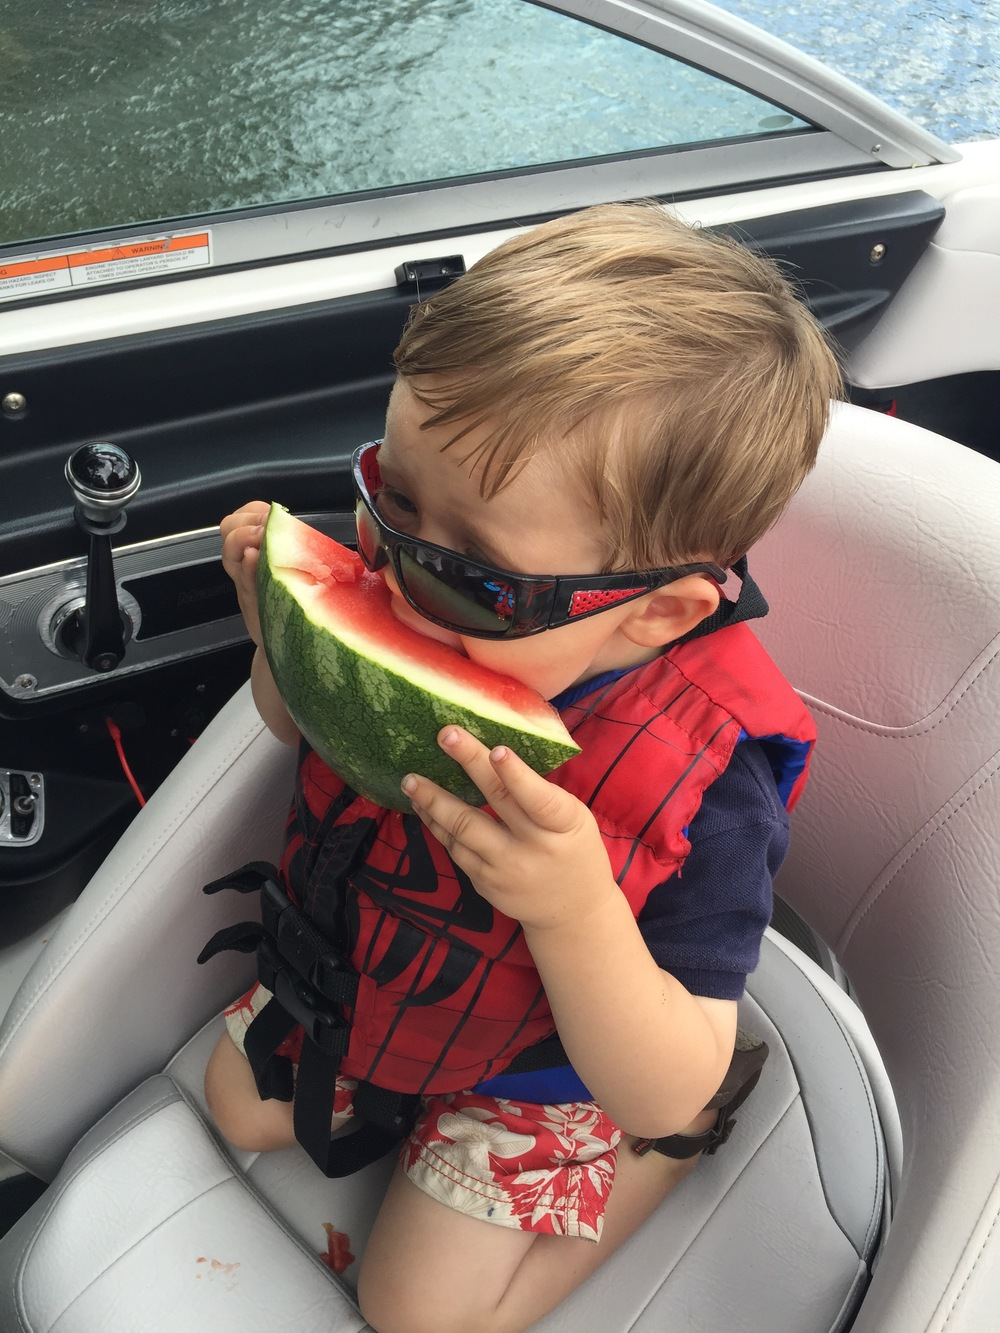 Watermelon is totally acceptable this weekend... just maybe go for a piece that isn't as big as your head.